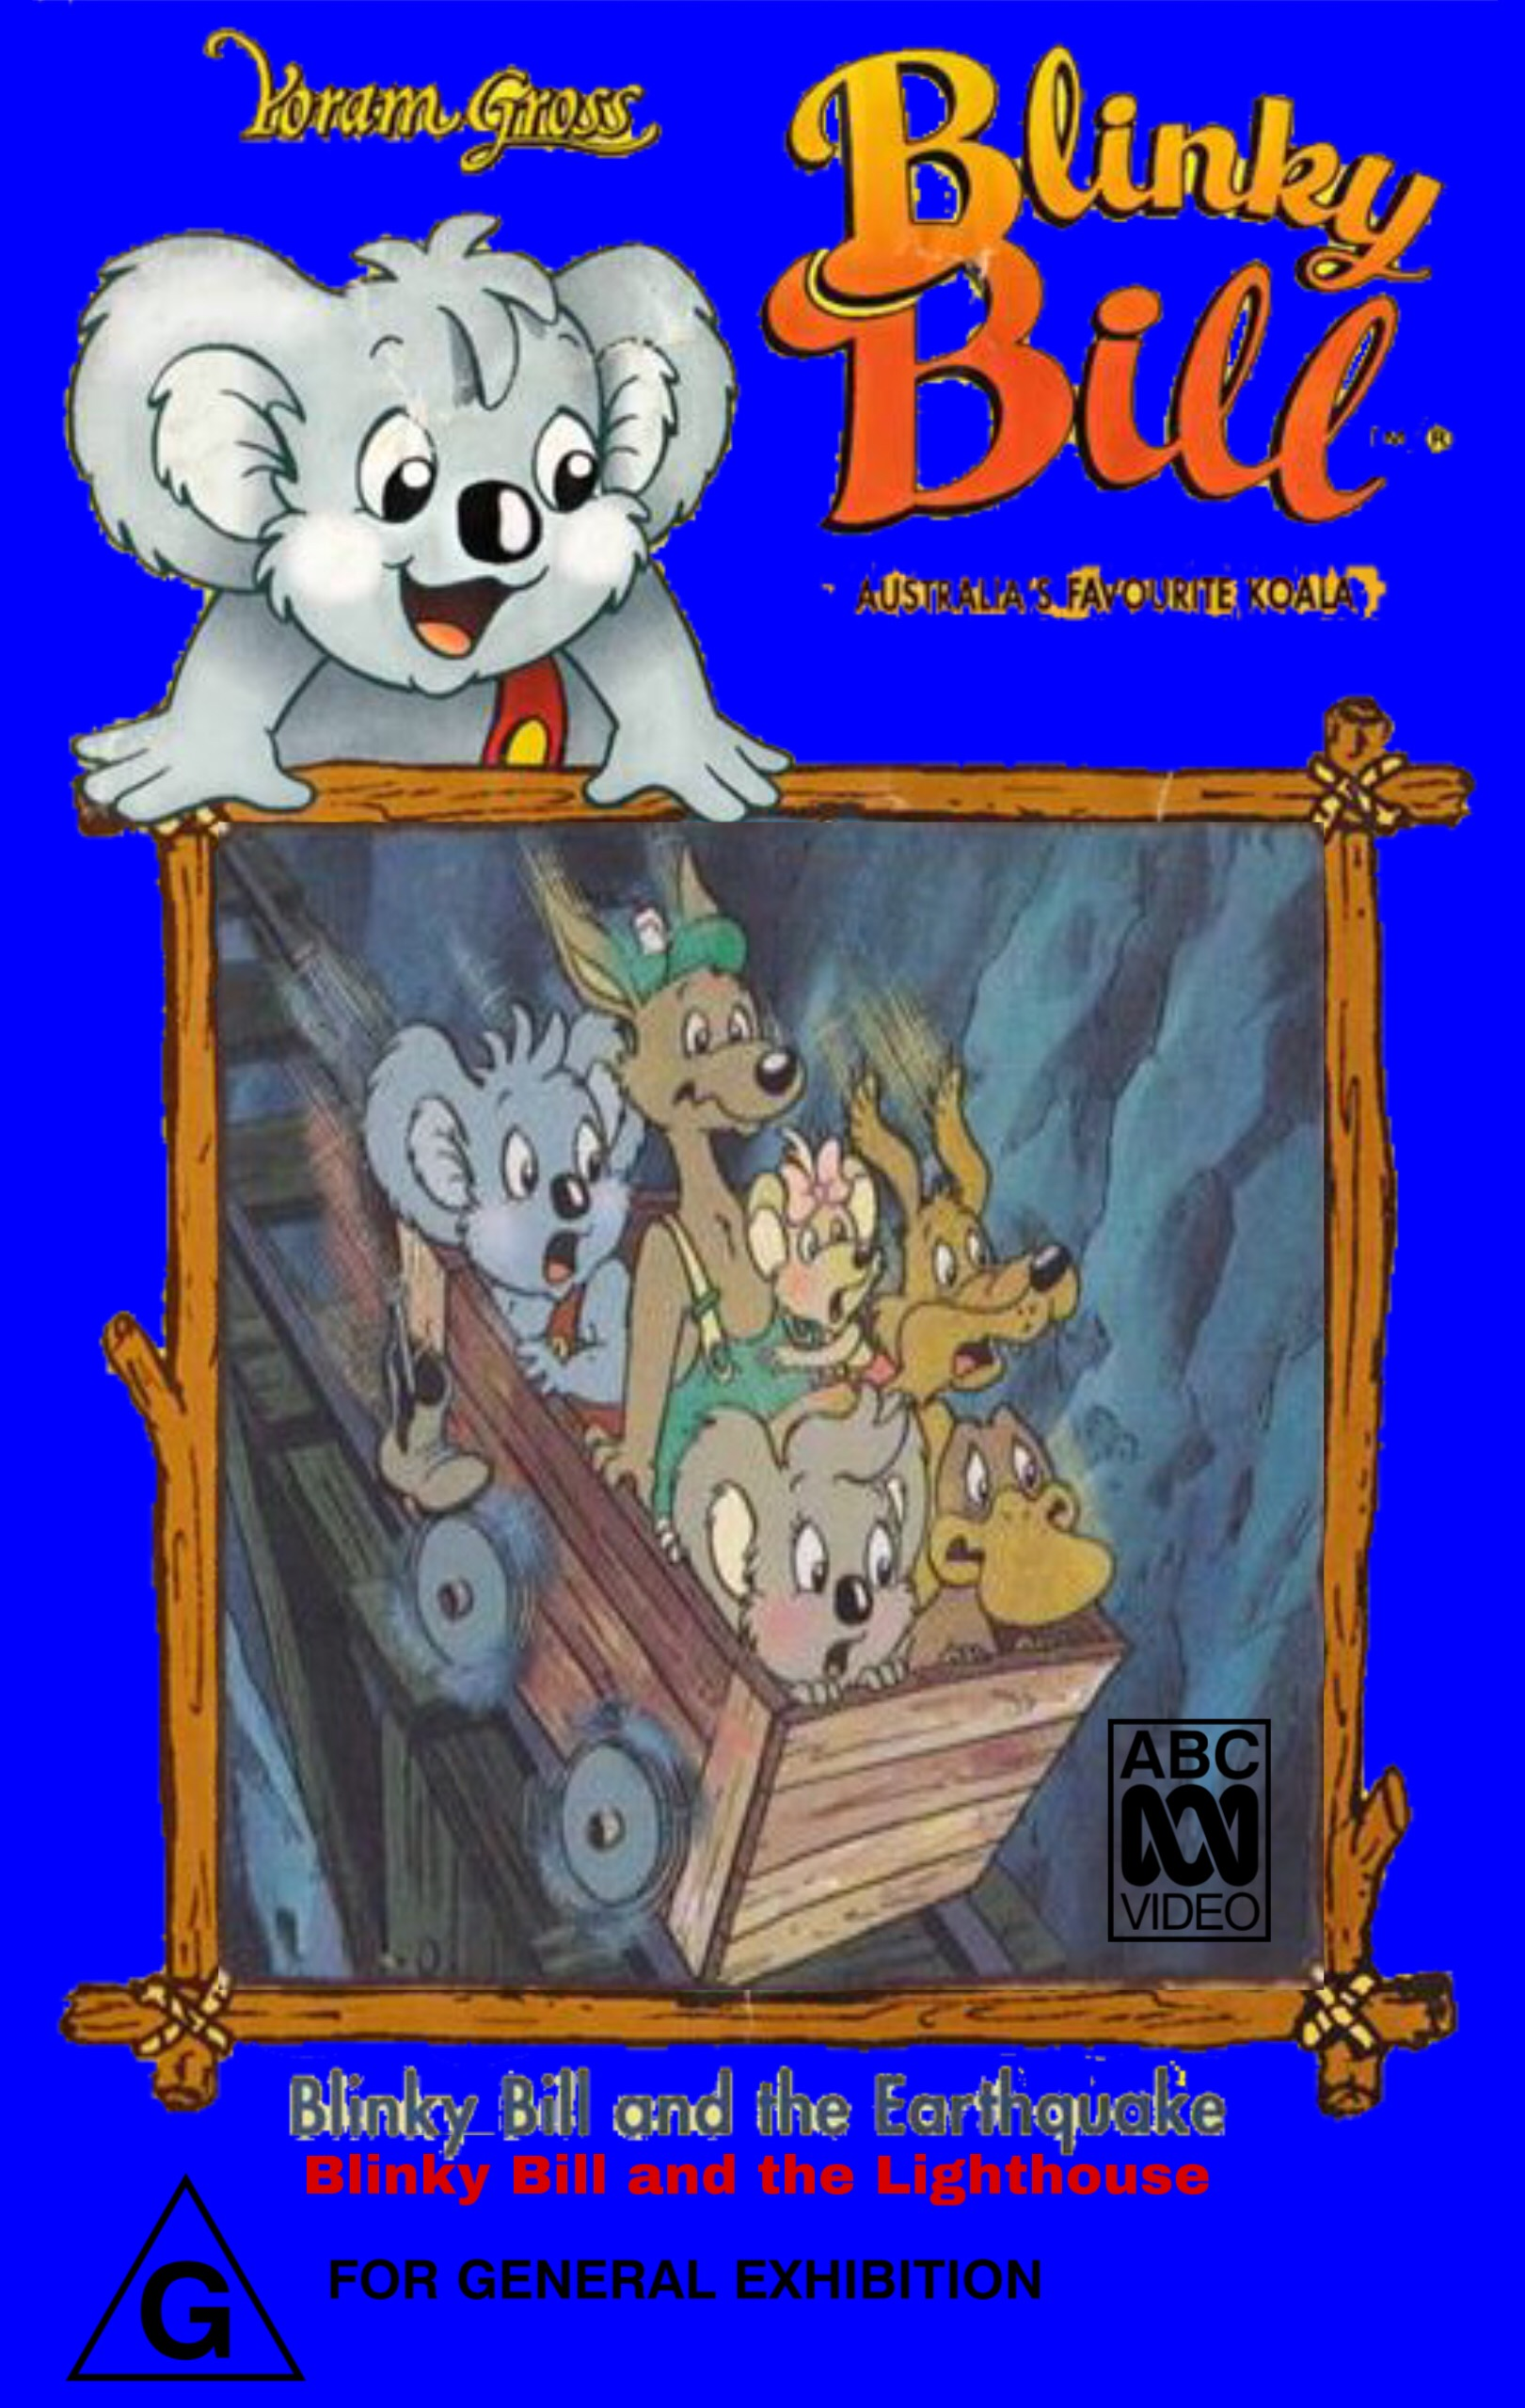 Blinky Bill and the Earthquake (VHS)